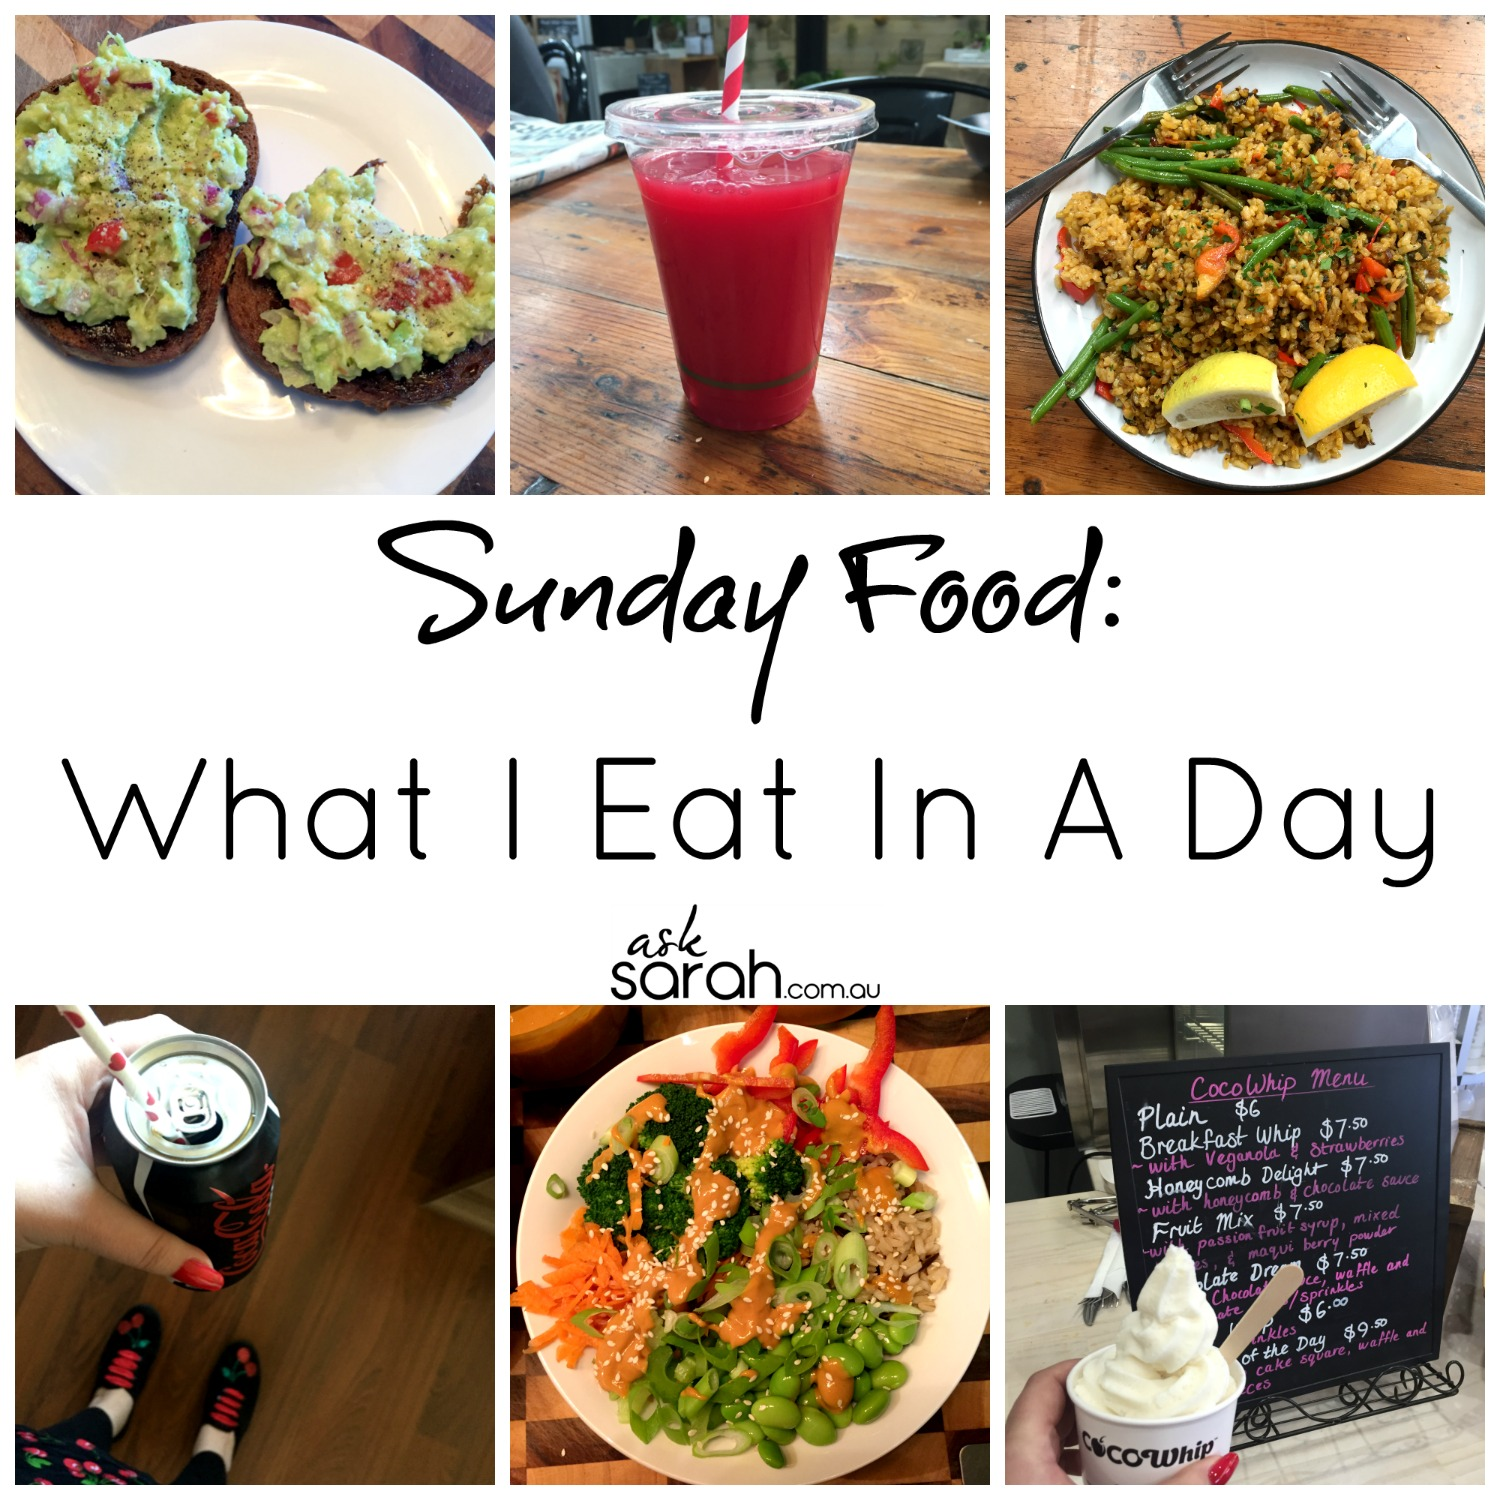 Food: What I Eat in A Day - Sunday {Vegetarian/Vegan}